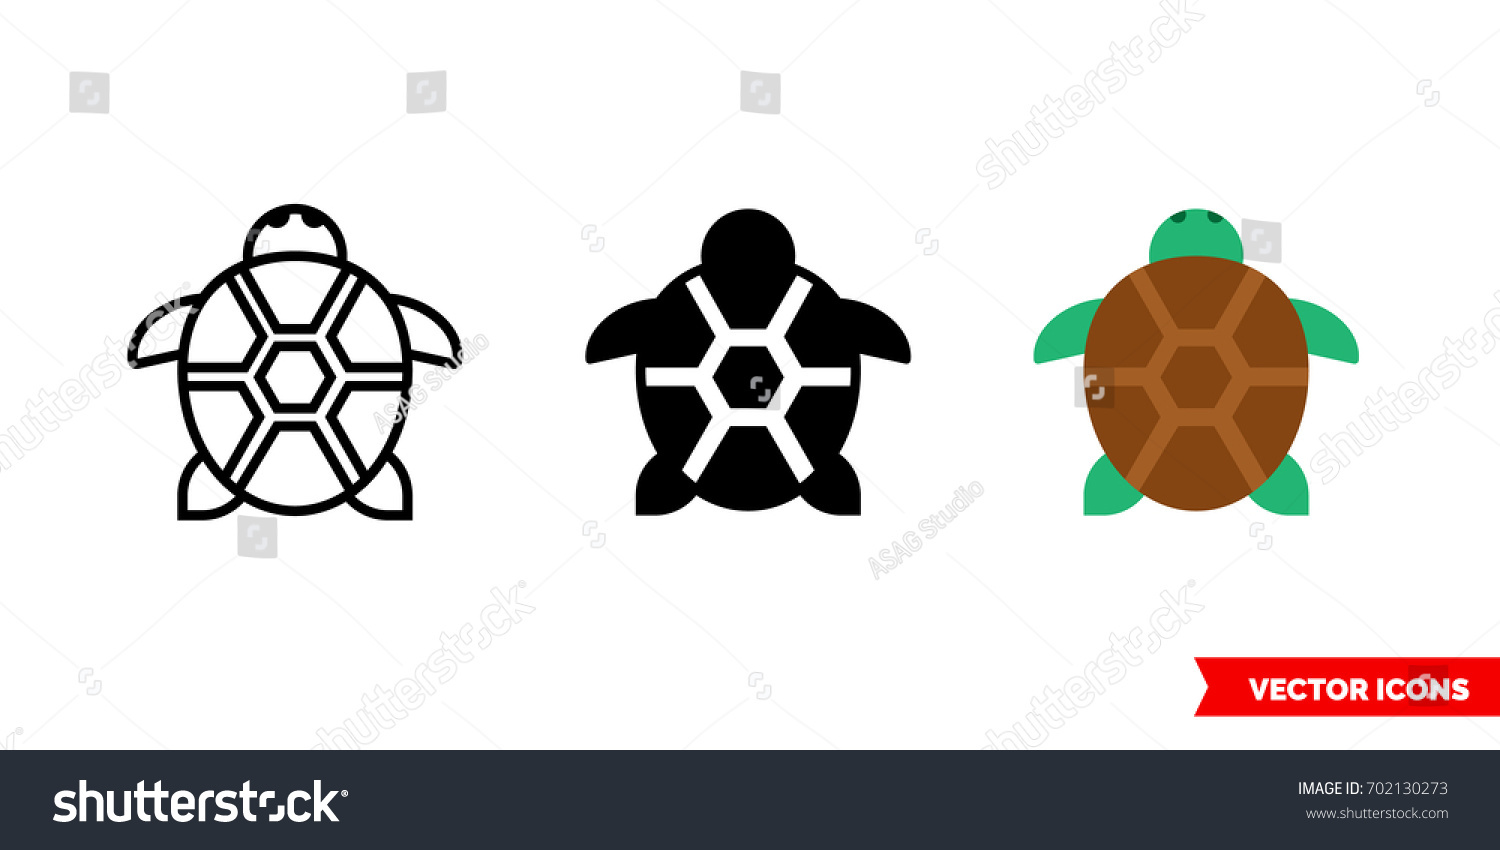 turtle icon 3 types color black stock vector 702130273 shutterstock